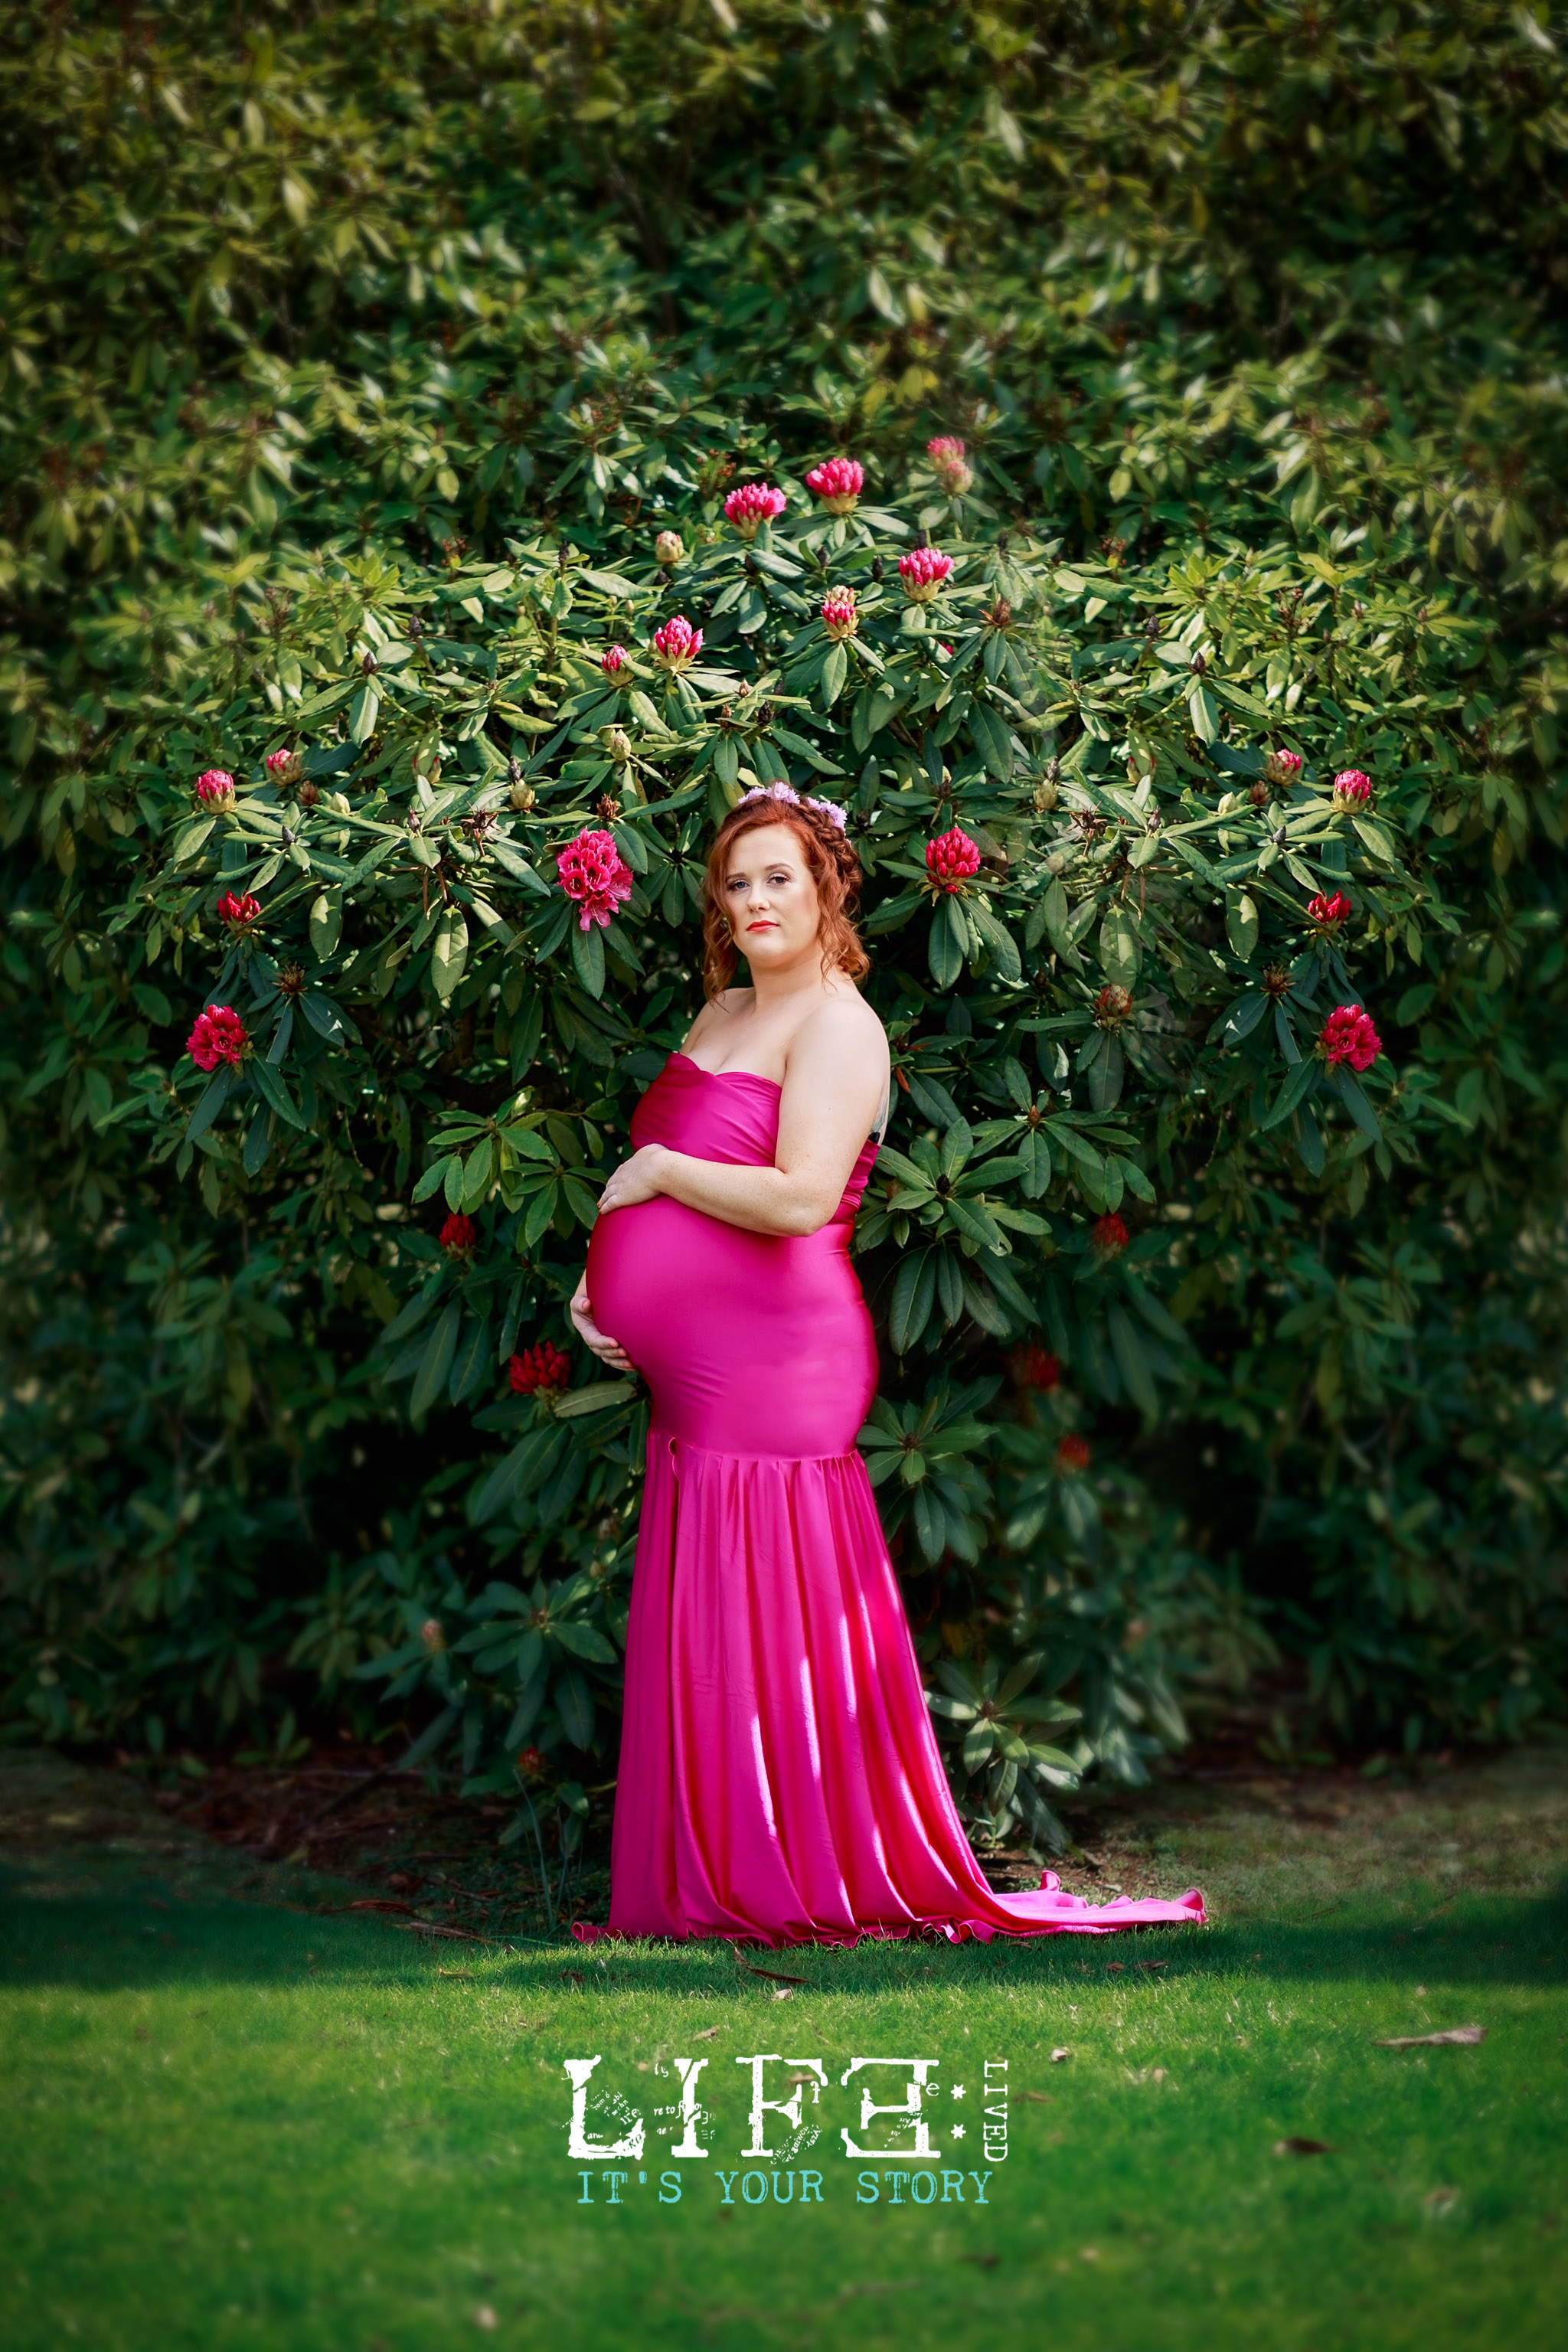 lincoln_maternity_photographer_sparkleprops-K1-2